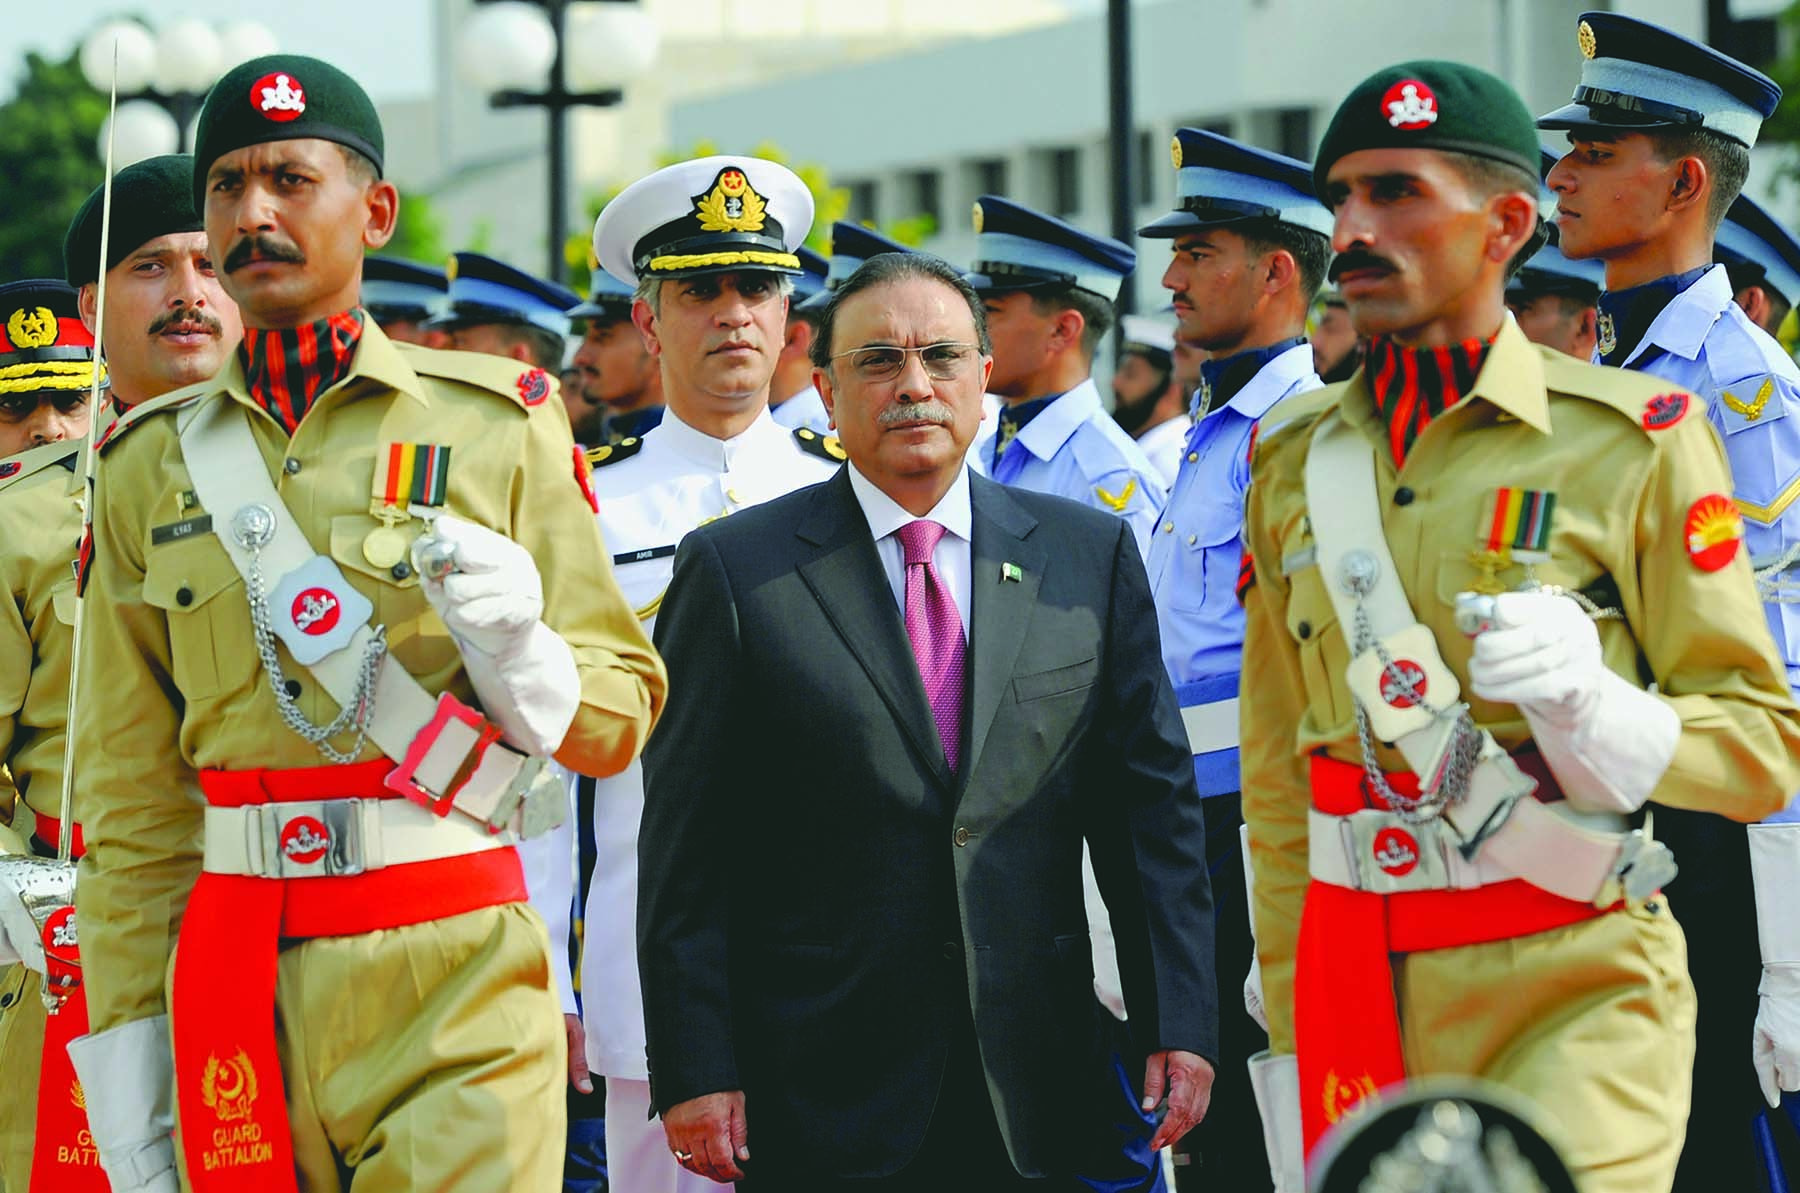 Asif Zardari completed his presidential term and left with due decorum. Like his predecessor Pervez Musharraf, he was a president who called the shots – all the shots – in a parliamentary dispensation.